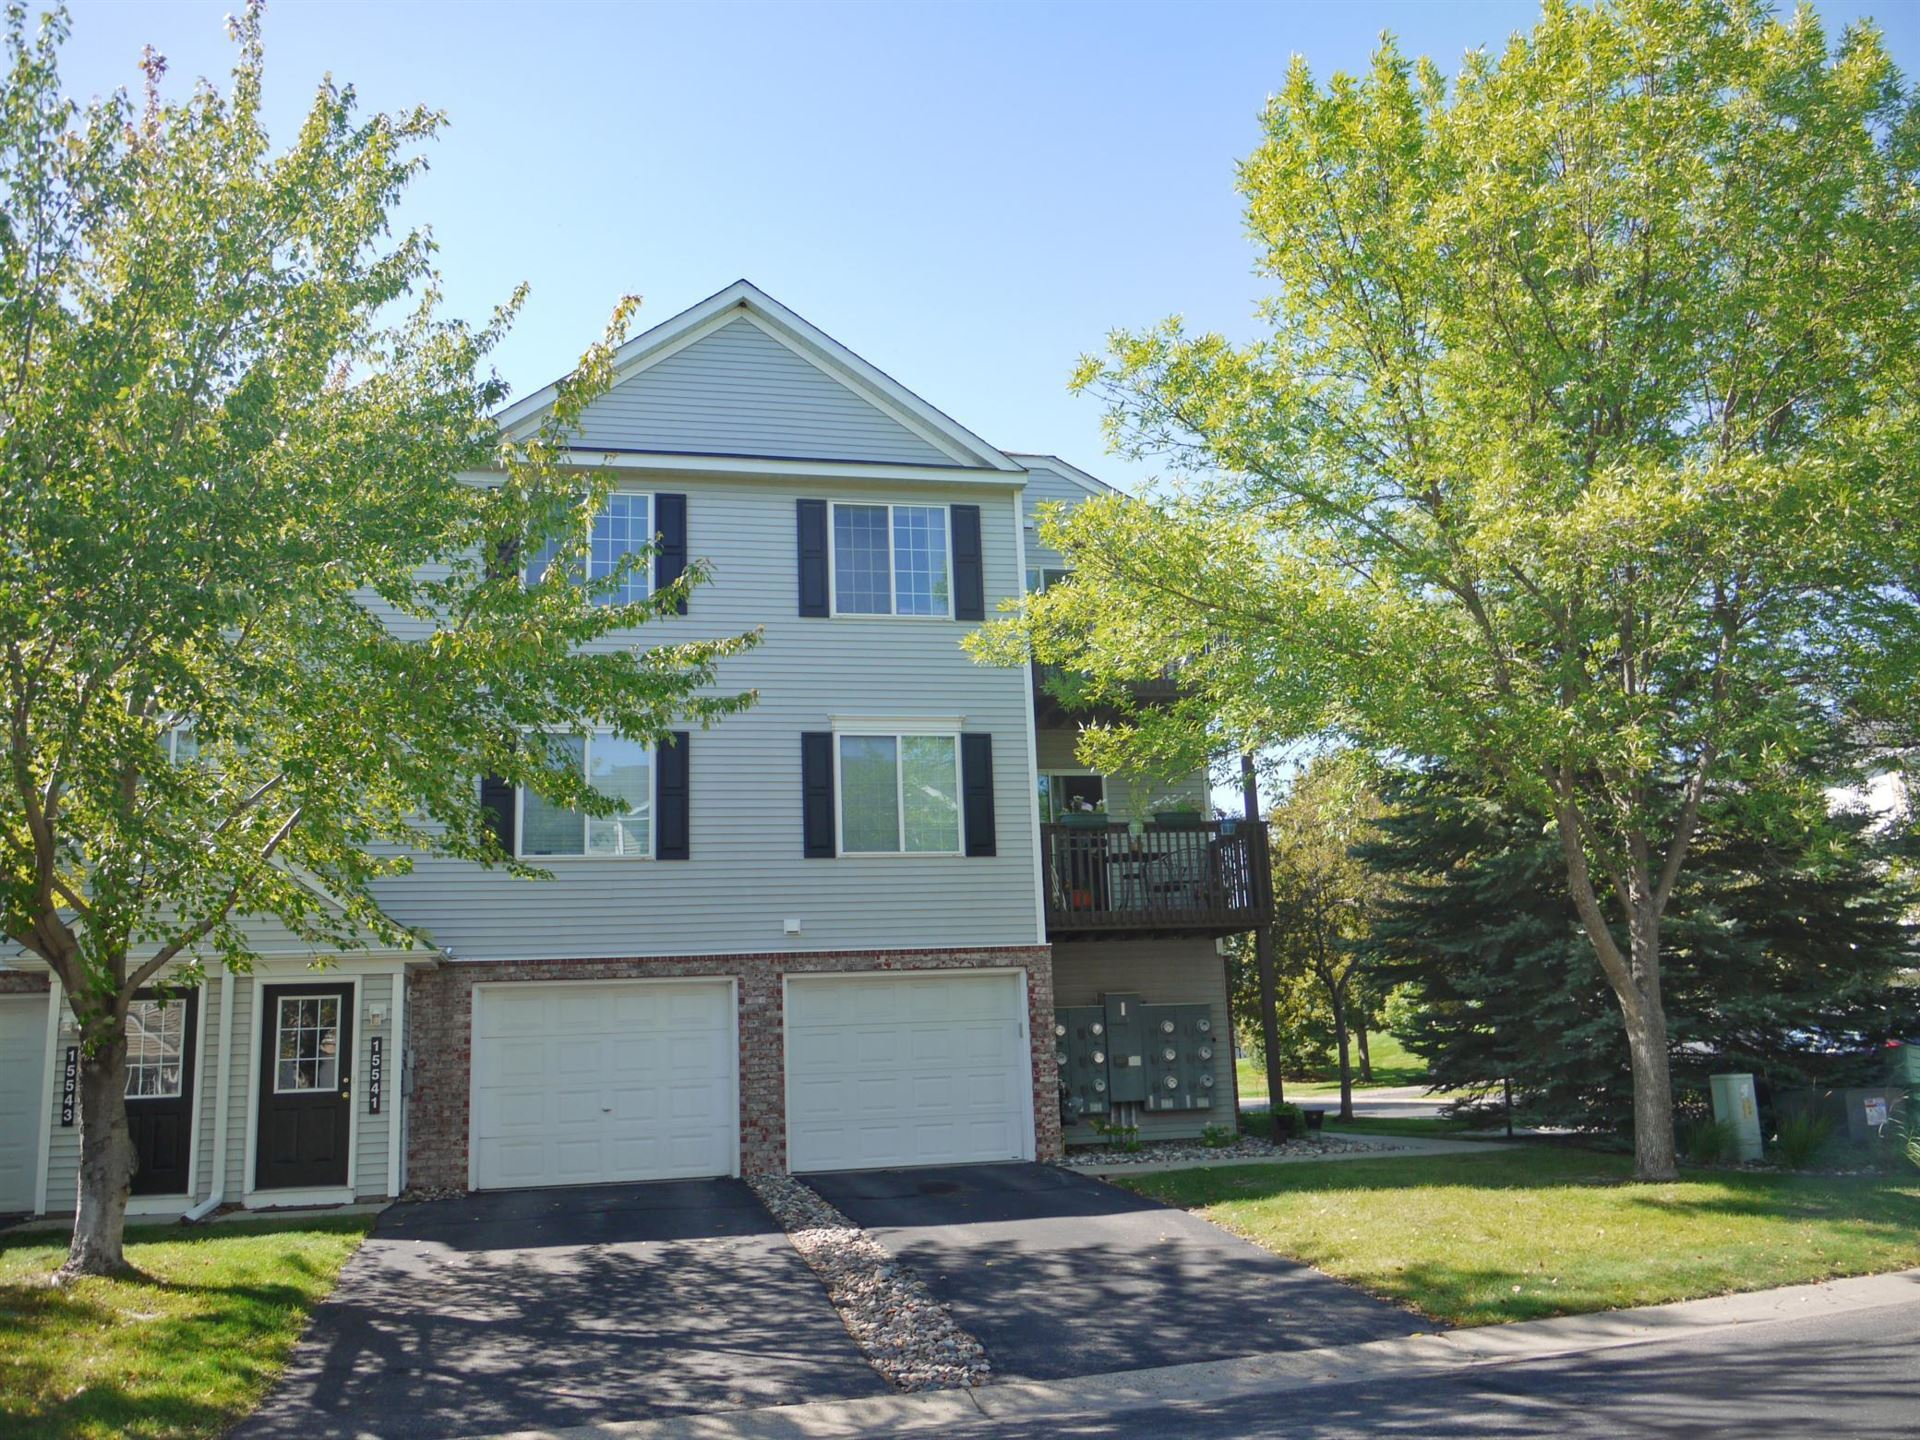 Photo of 15541 Flyboat Lane #67, Apple Valley, MN 55124 (MLS # 6102145)